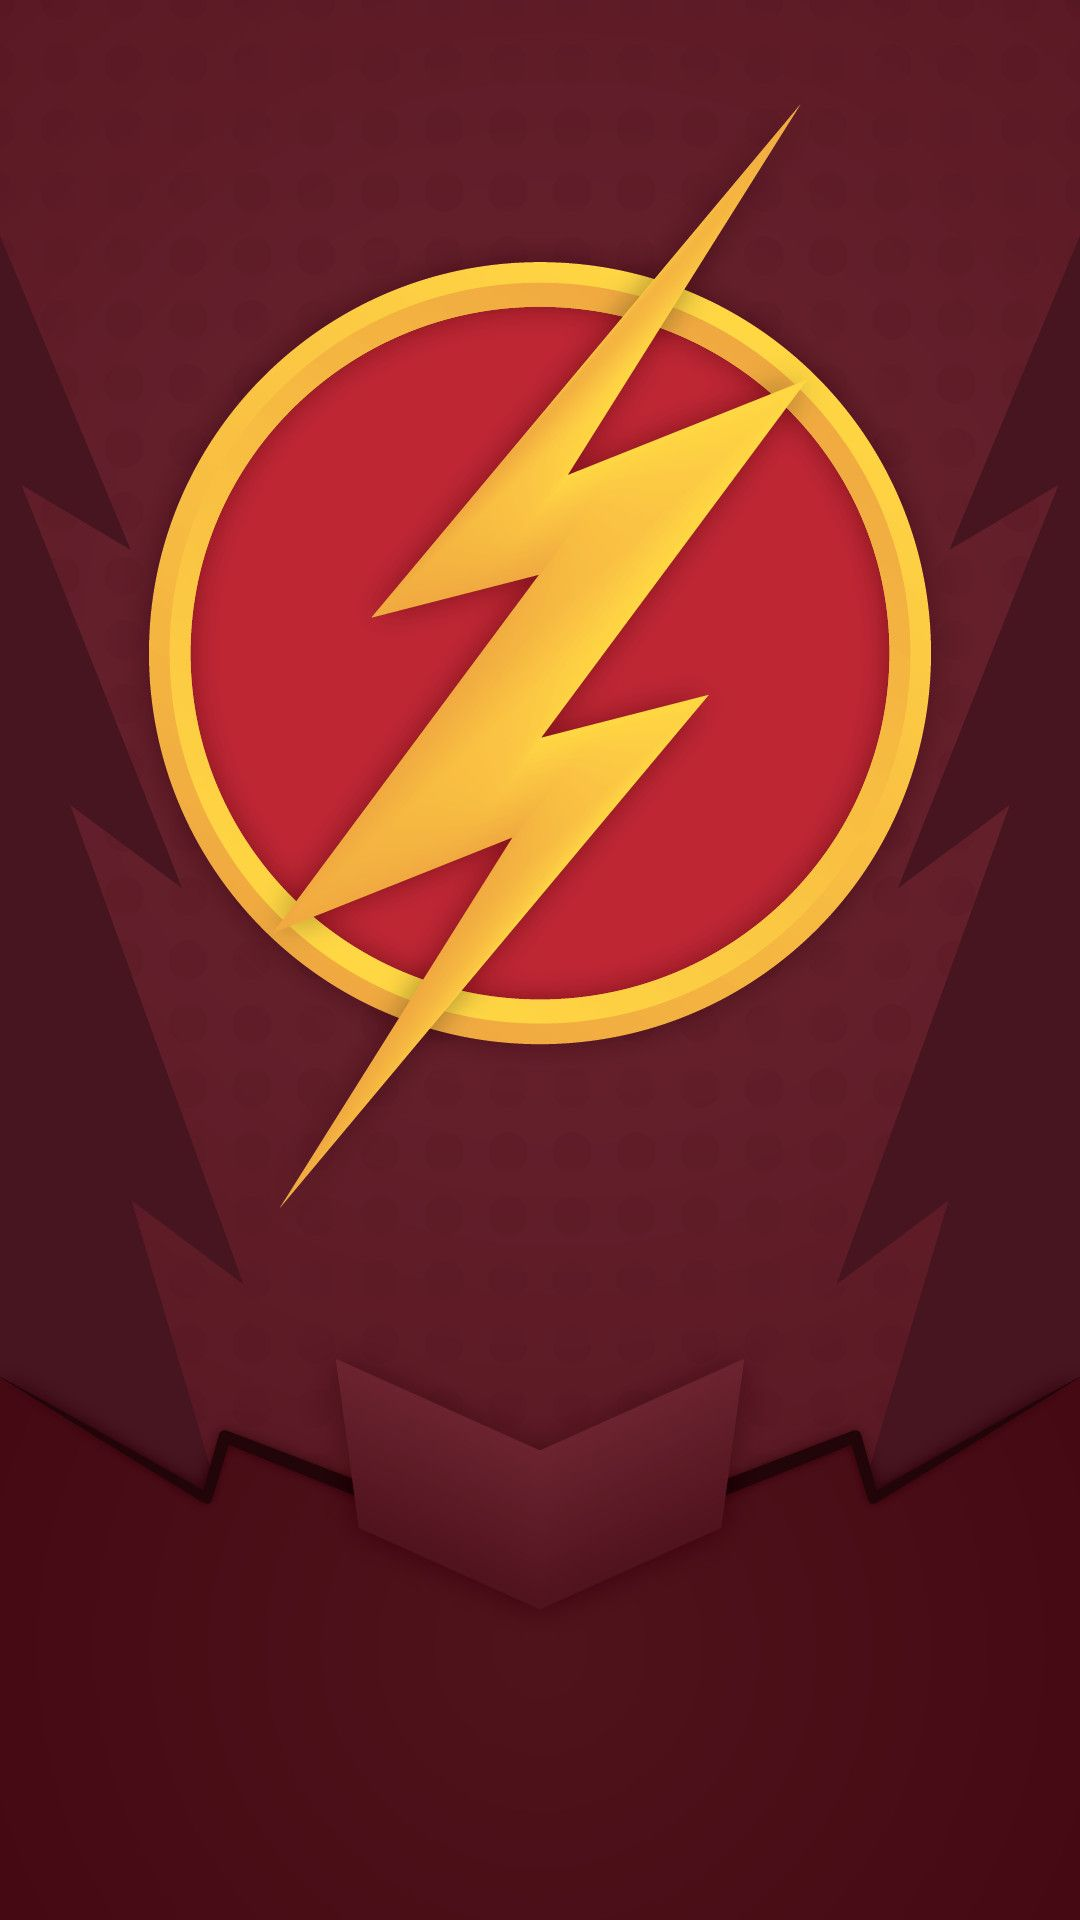 1080x1920 The Flash Wallpaper iPhone 7 Flash wallpaper